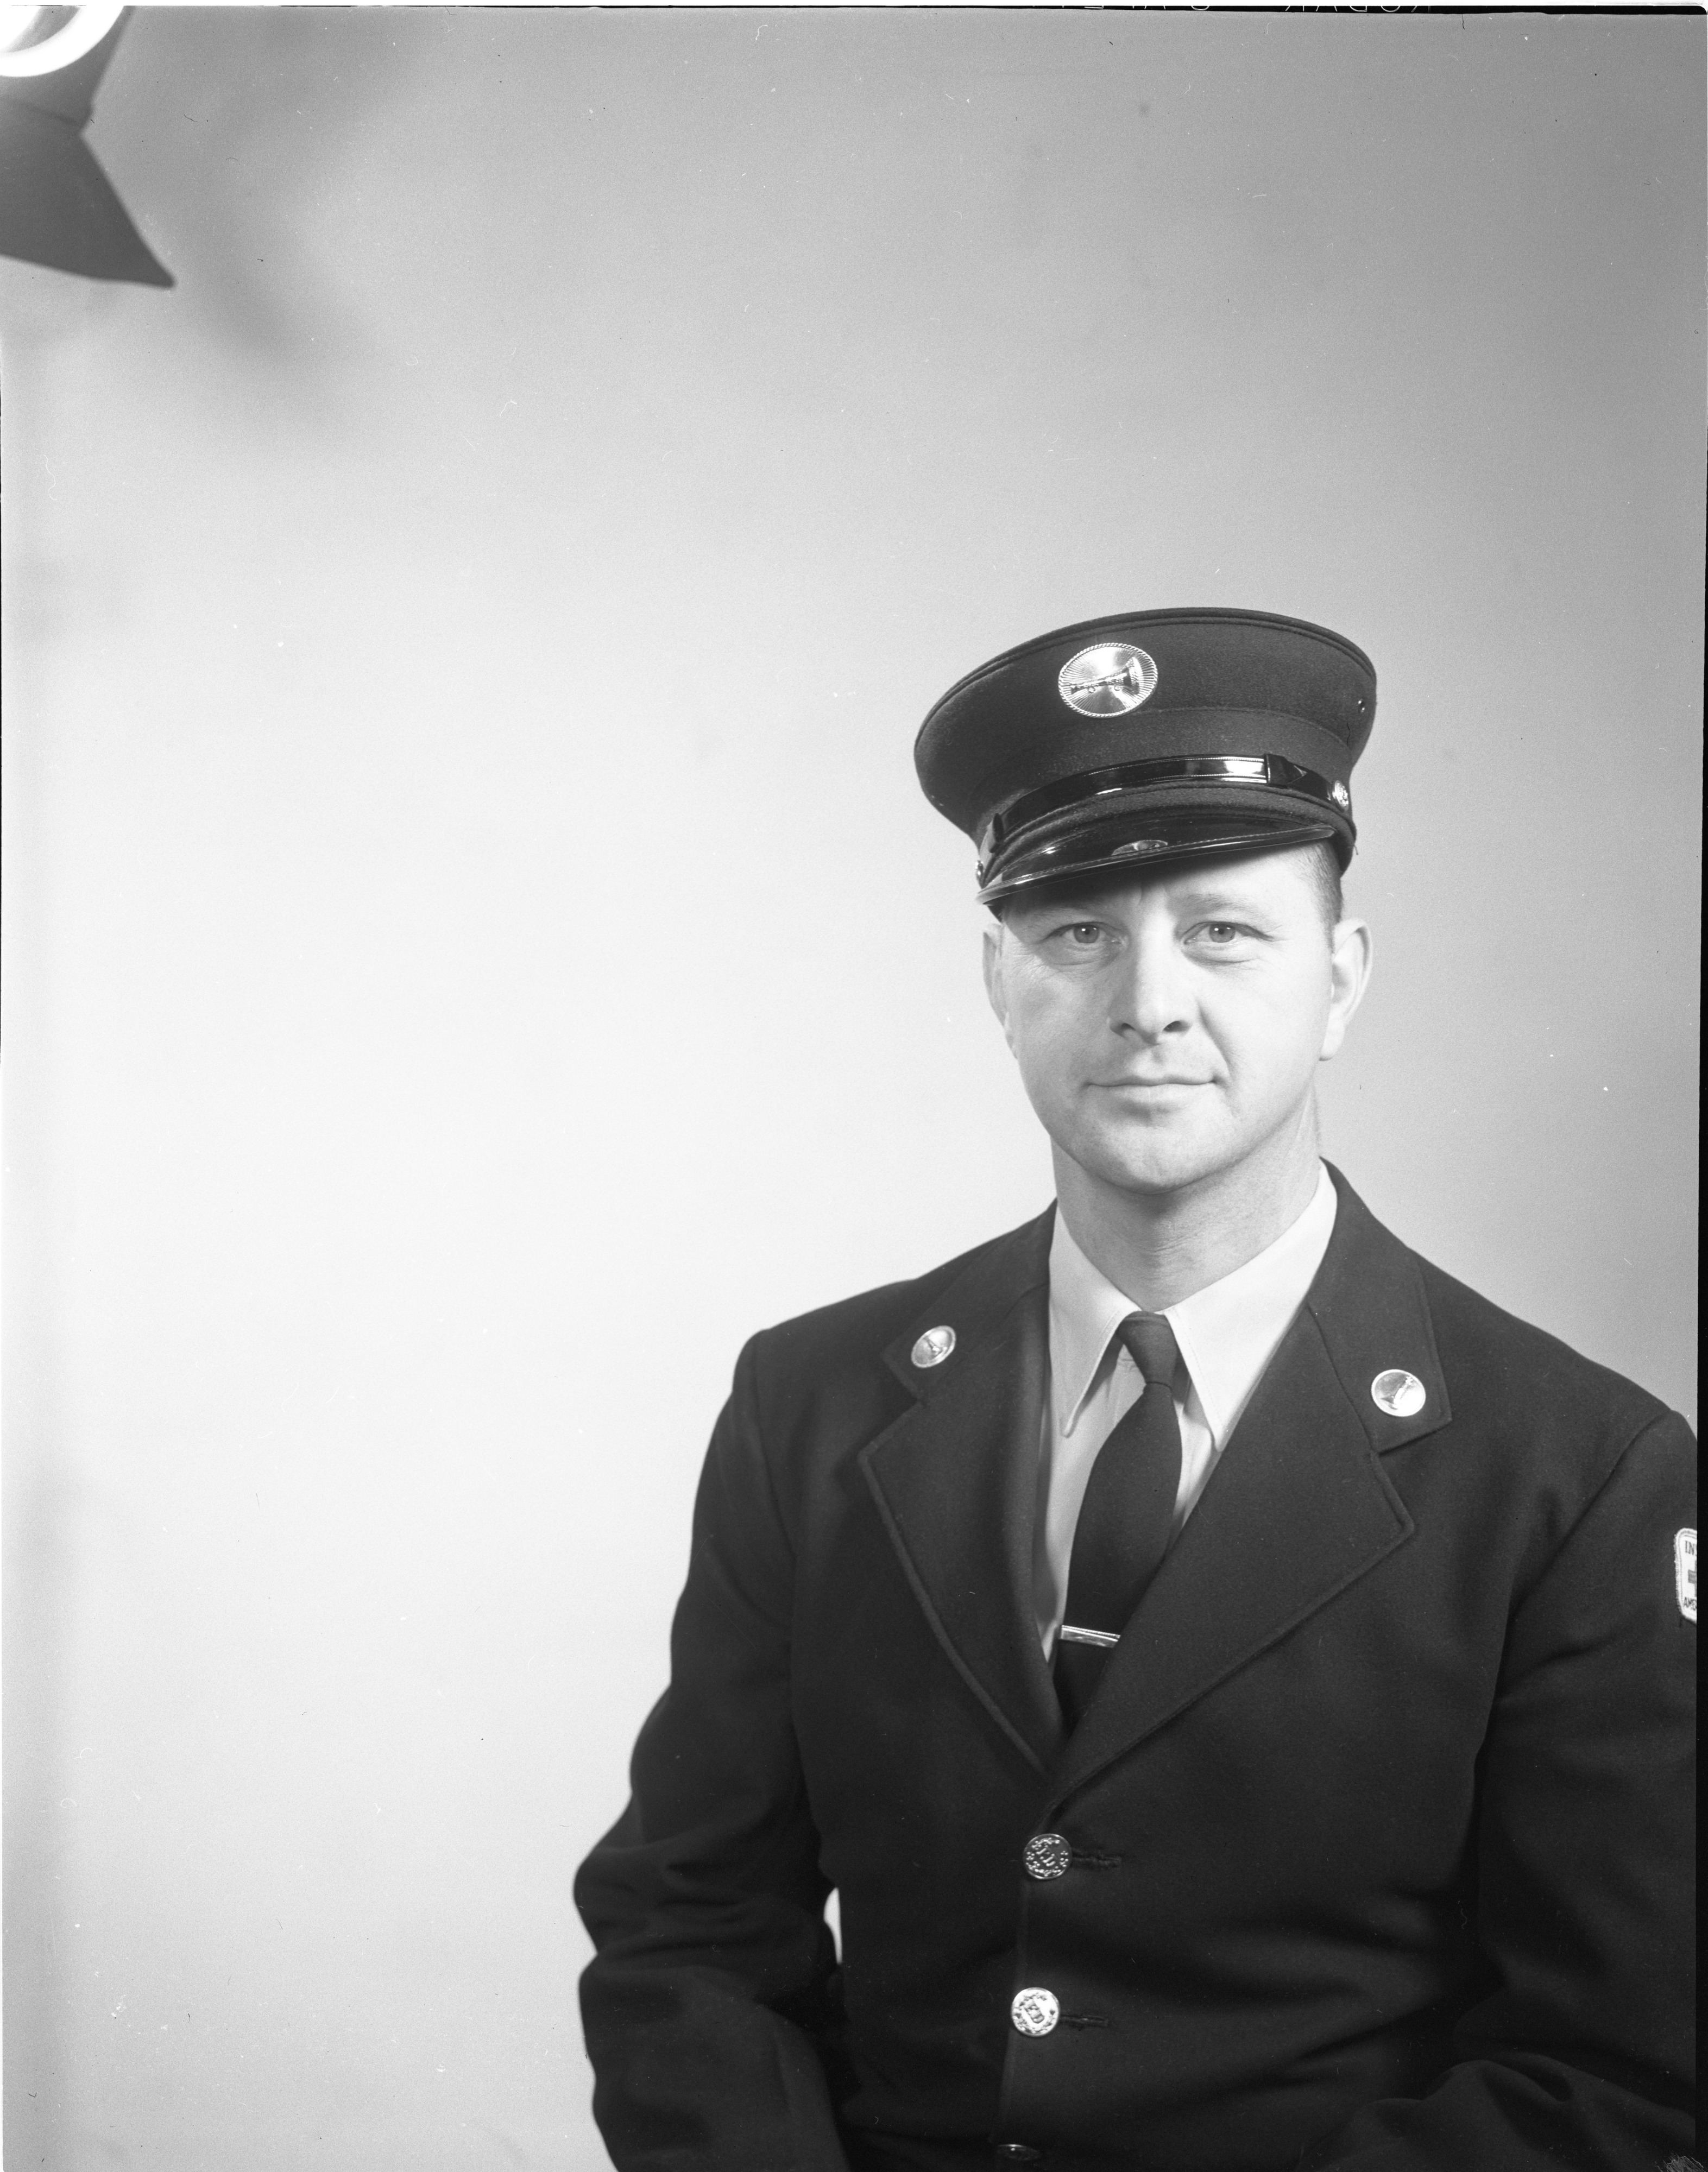 Laurel Bauer, Ann Arbor Fireman, April 1963 image